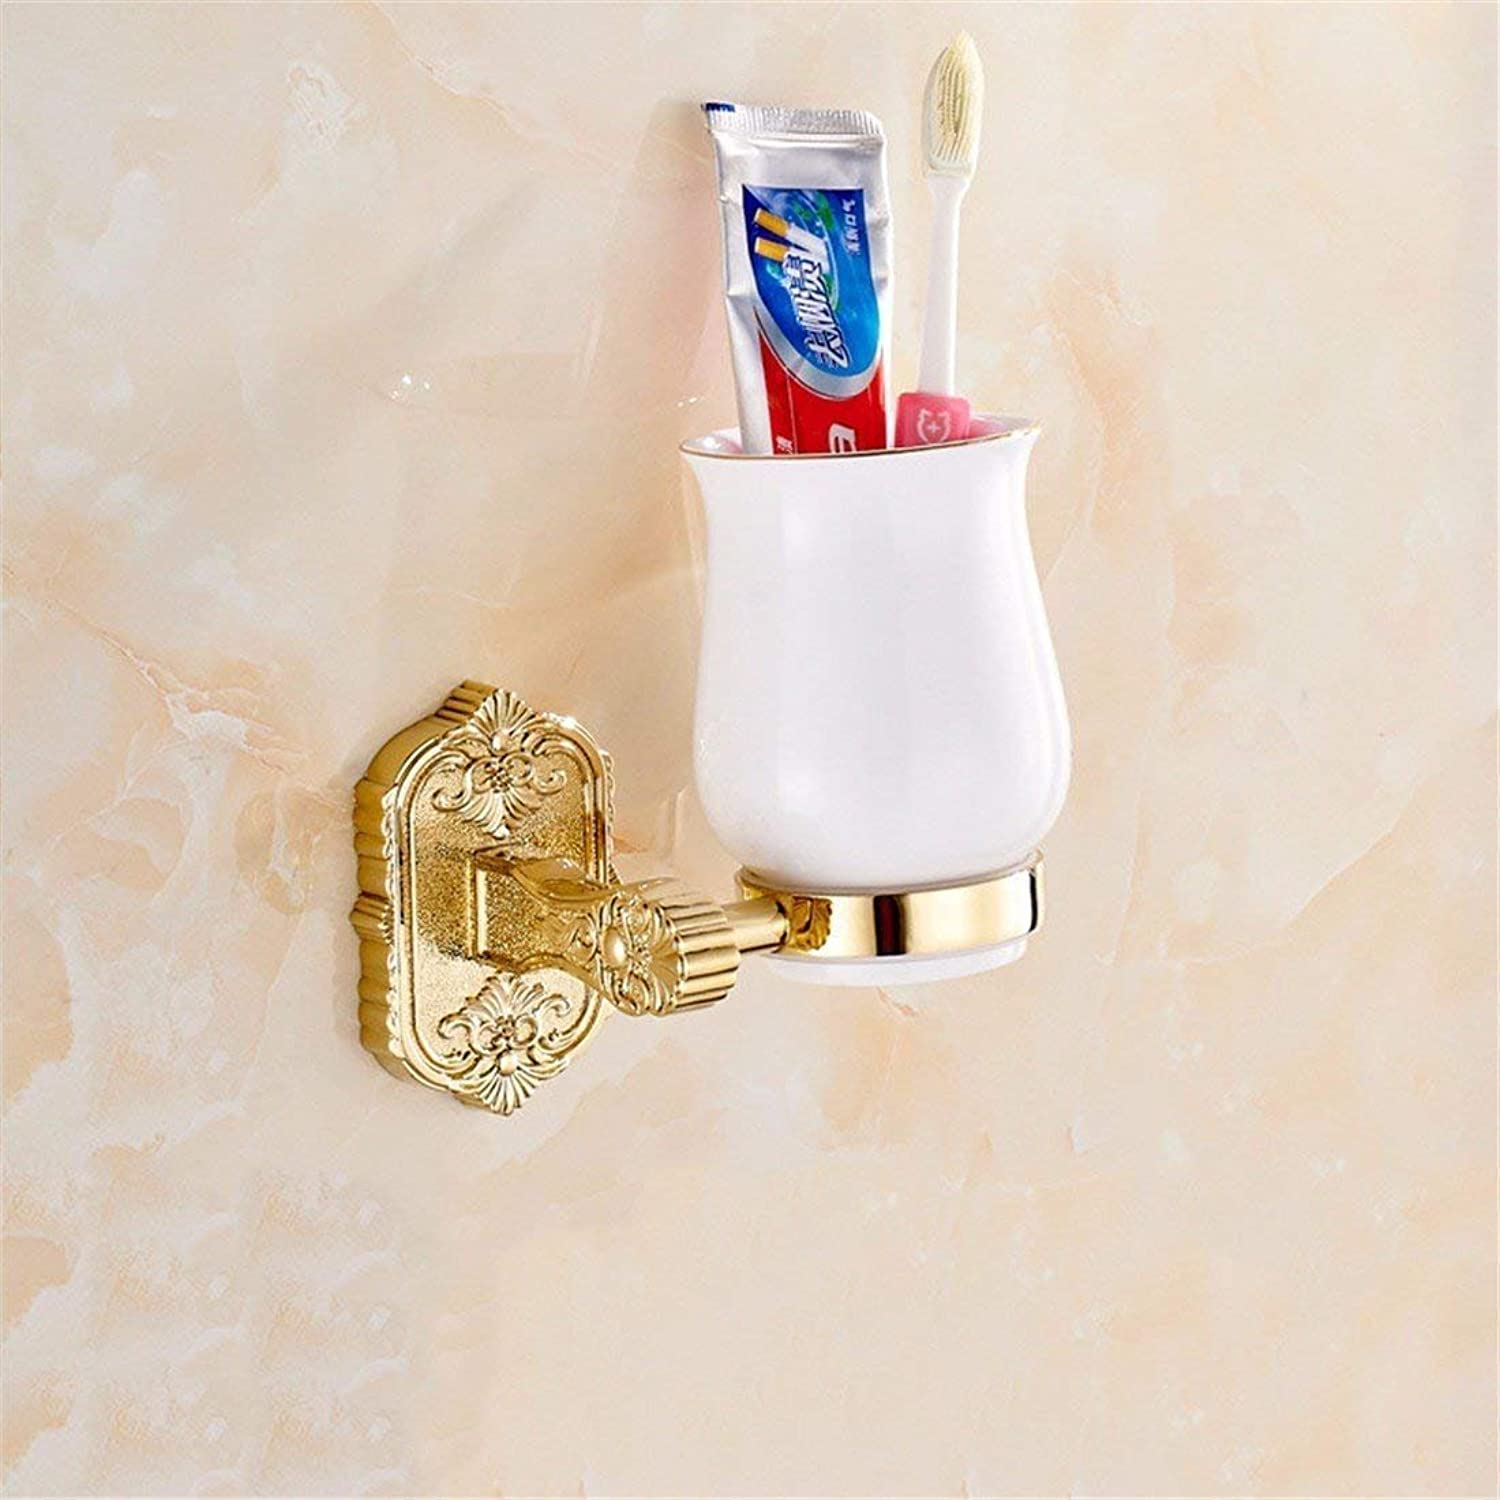 The zinc Alloy, gold Carved Christmas, Basis of Bathroom Fittings, Toilet Paper, soap,Single Cup